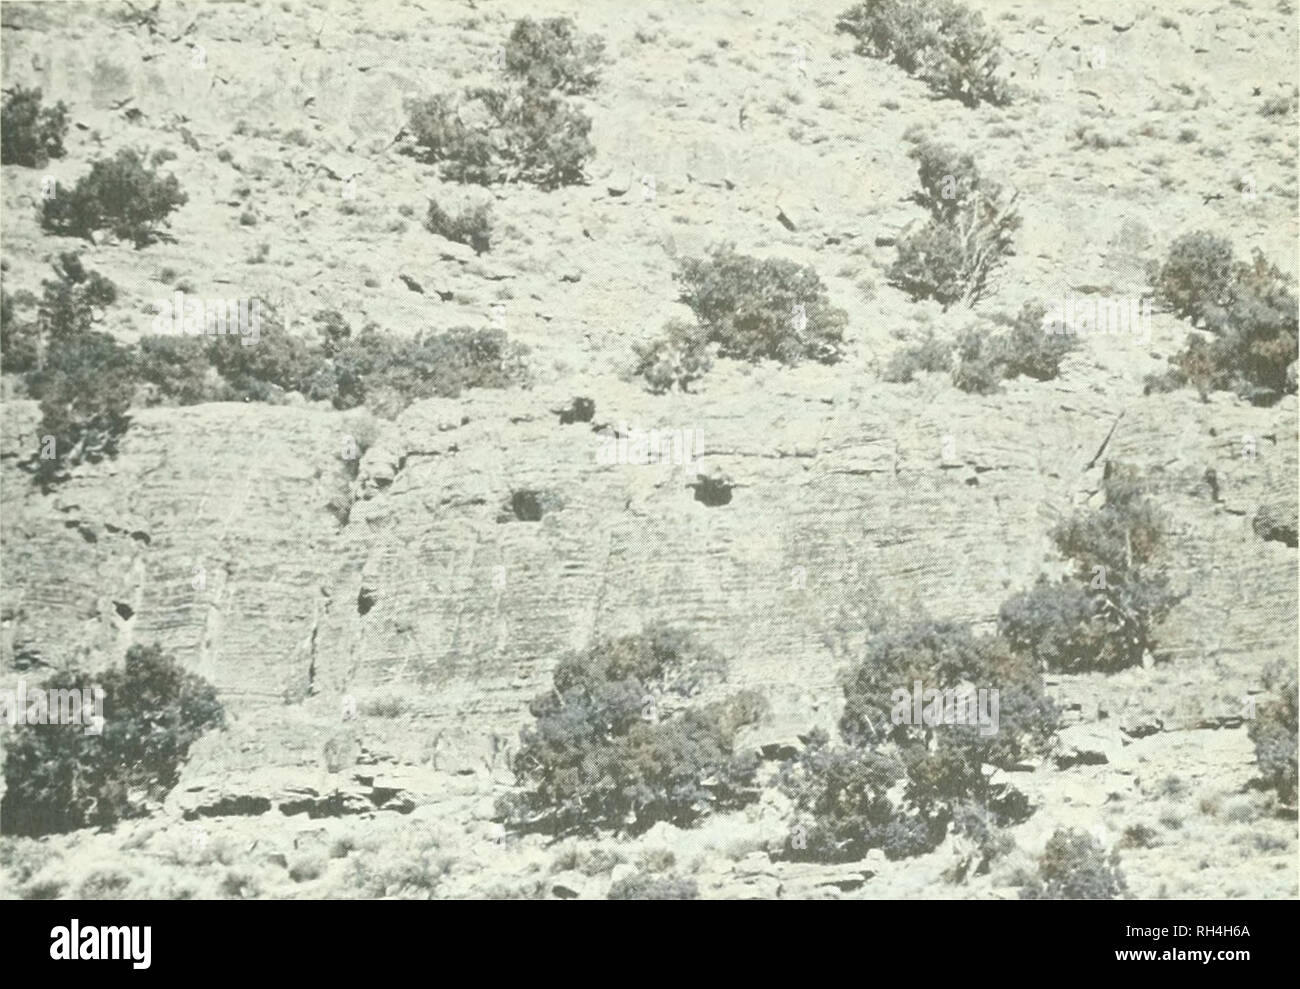 . Brigham Young University science bulletin. Biology -- Periodicals. BioLcx;icAL Seiues, '()l. 18, No. 3 Bheeuing Ecology of Utah IUptoks 21. Fig. 10. Cliff nesting site of Prairir Falcons and Great Homed Oivls in the western Thorpe Hills. l)V Starlings (Stunii.s vulgaris) nesting in the same localities. The onh' Short-eared Owl nest on the study area was located at an elevation of 4S90 feet. The nest site was placed at the base of a large clump of sagebmsh and was partially sheltered and hidden b' its branches. A few twigs had been arranged on the nest floor and down was placed among them;  Stock Photo